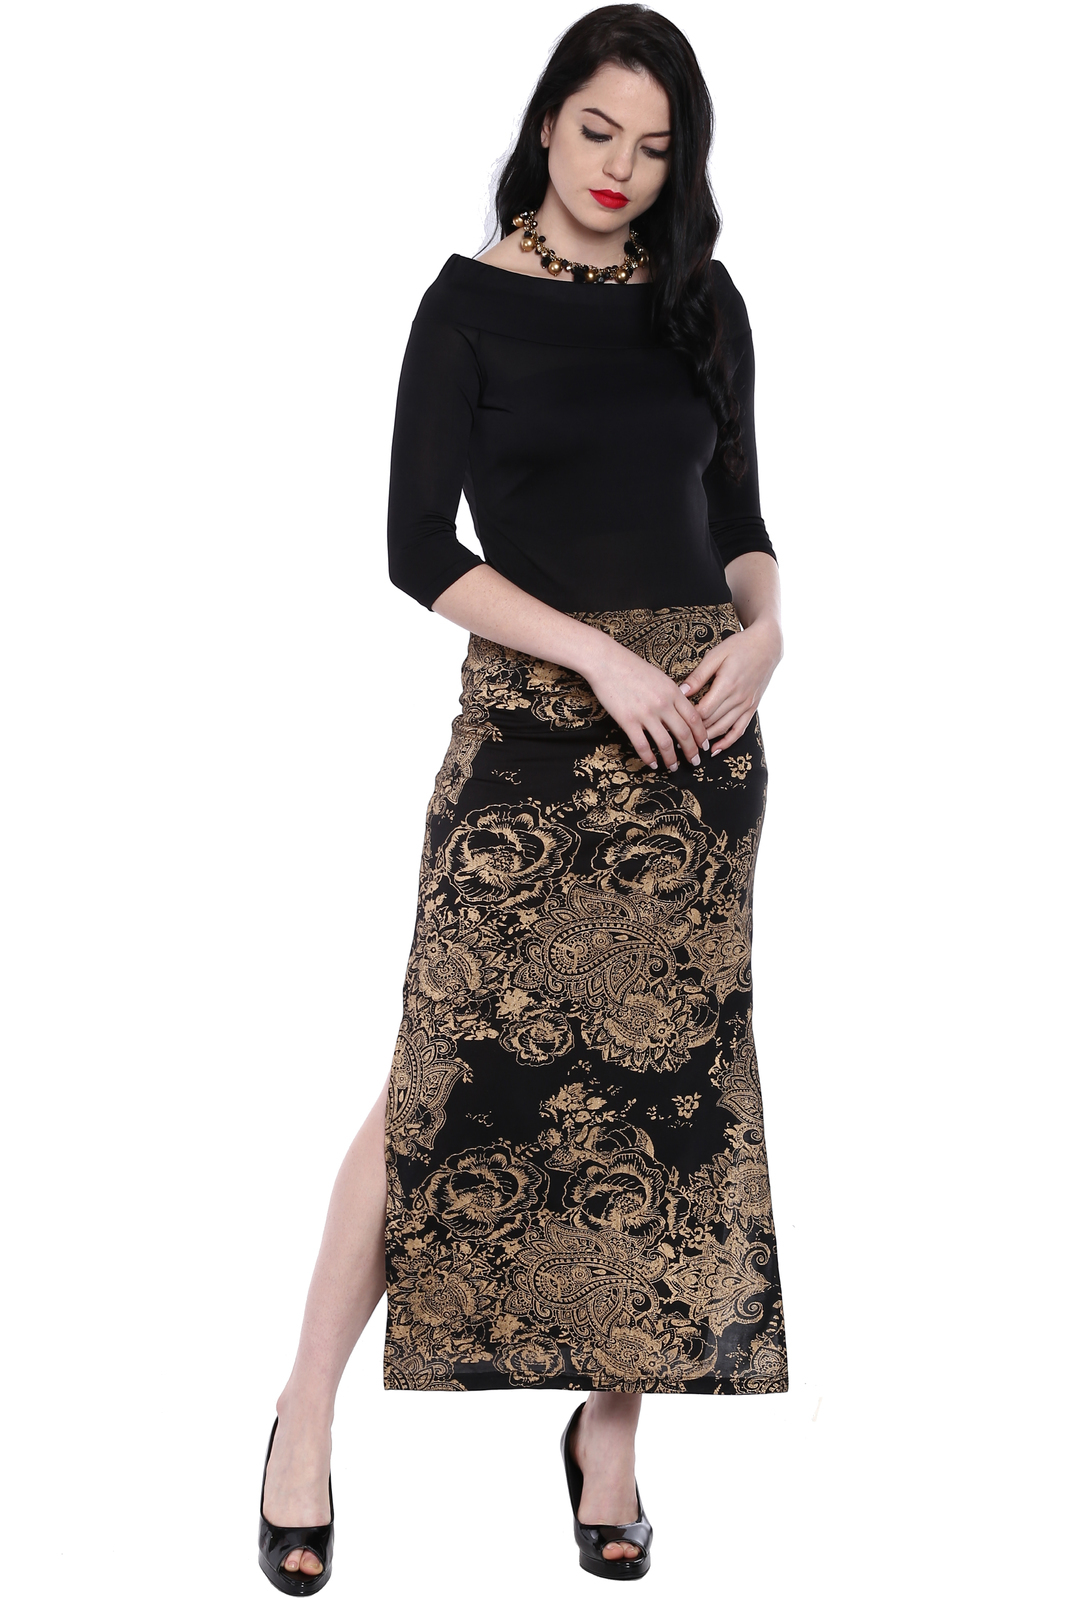 Ira Soleil Black all over printed long skirt made with polyester lycra